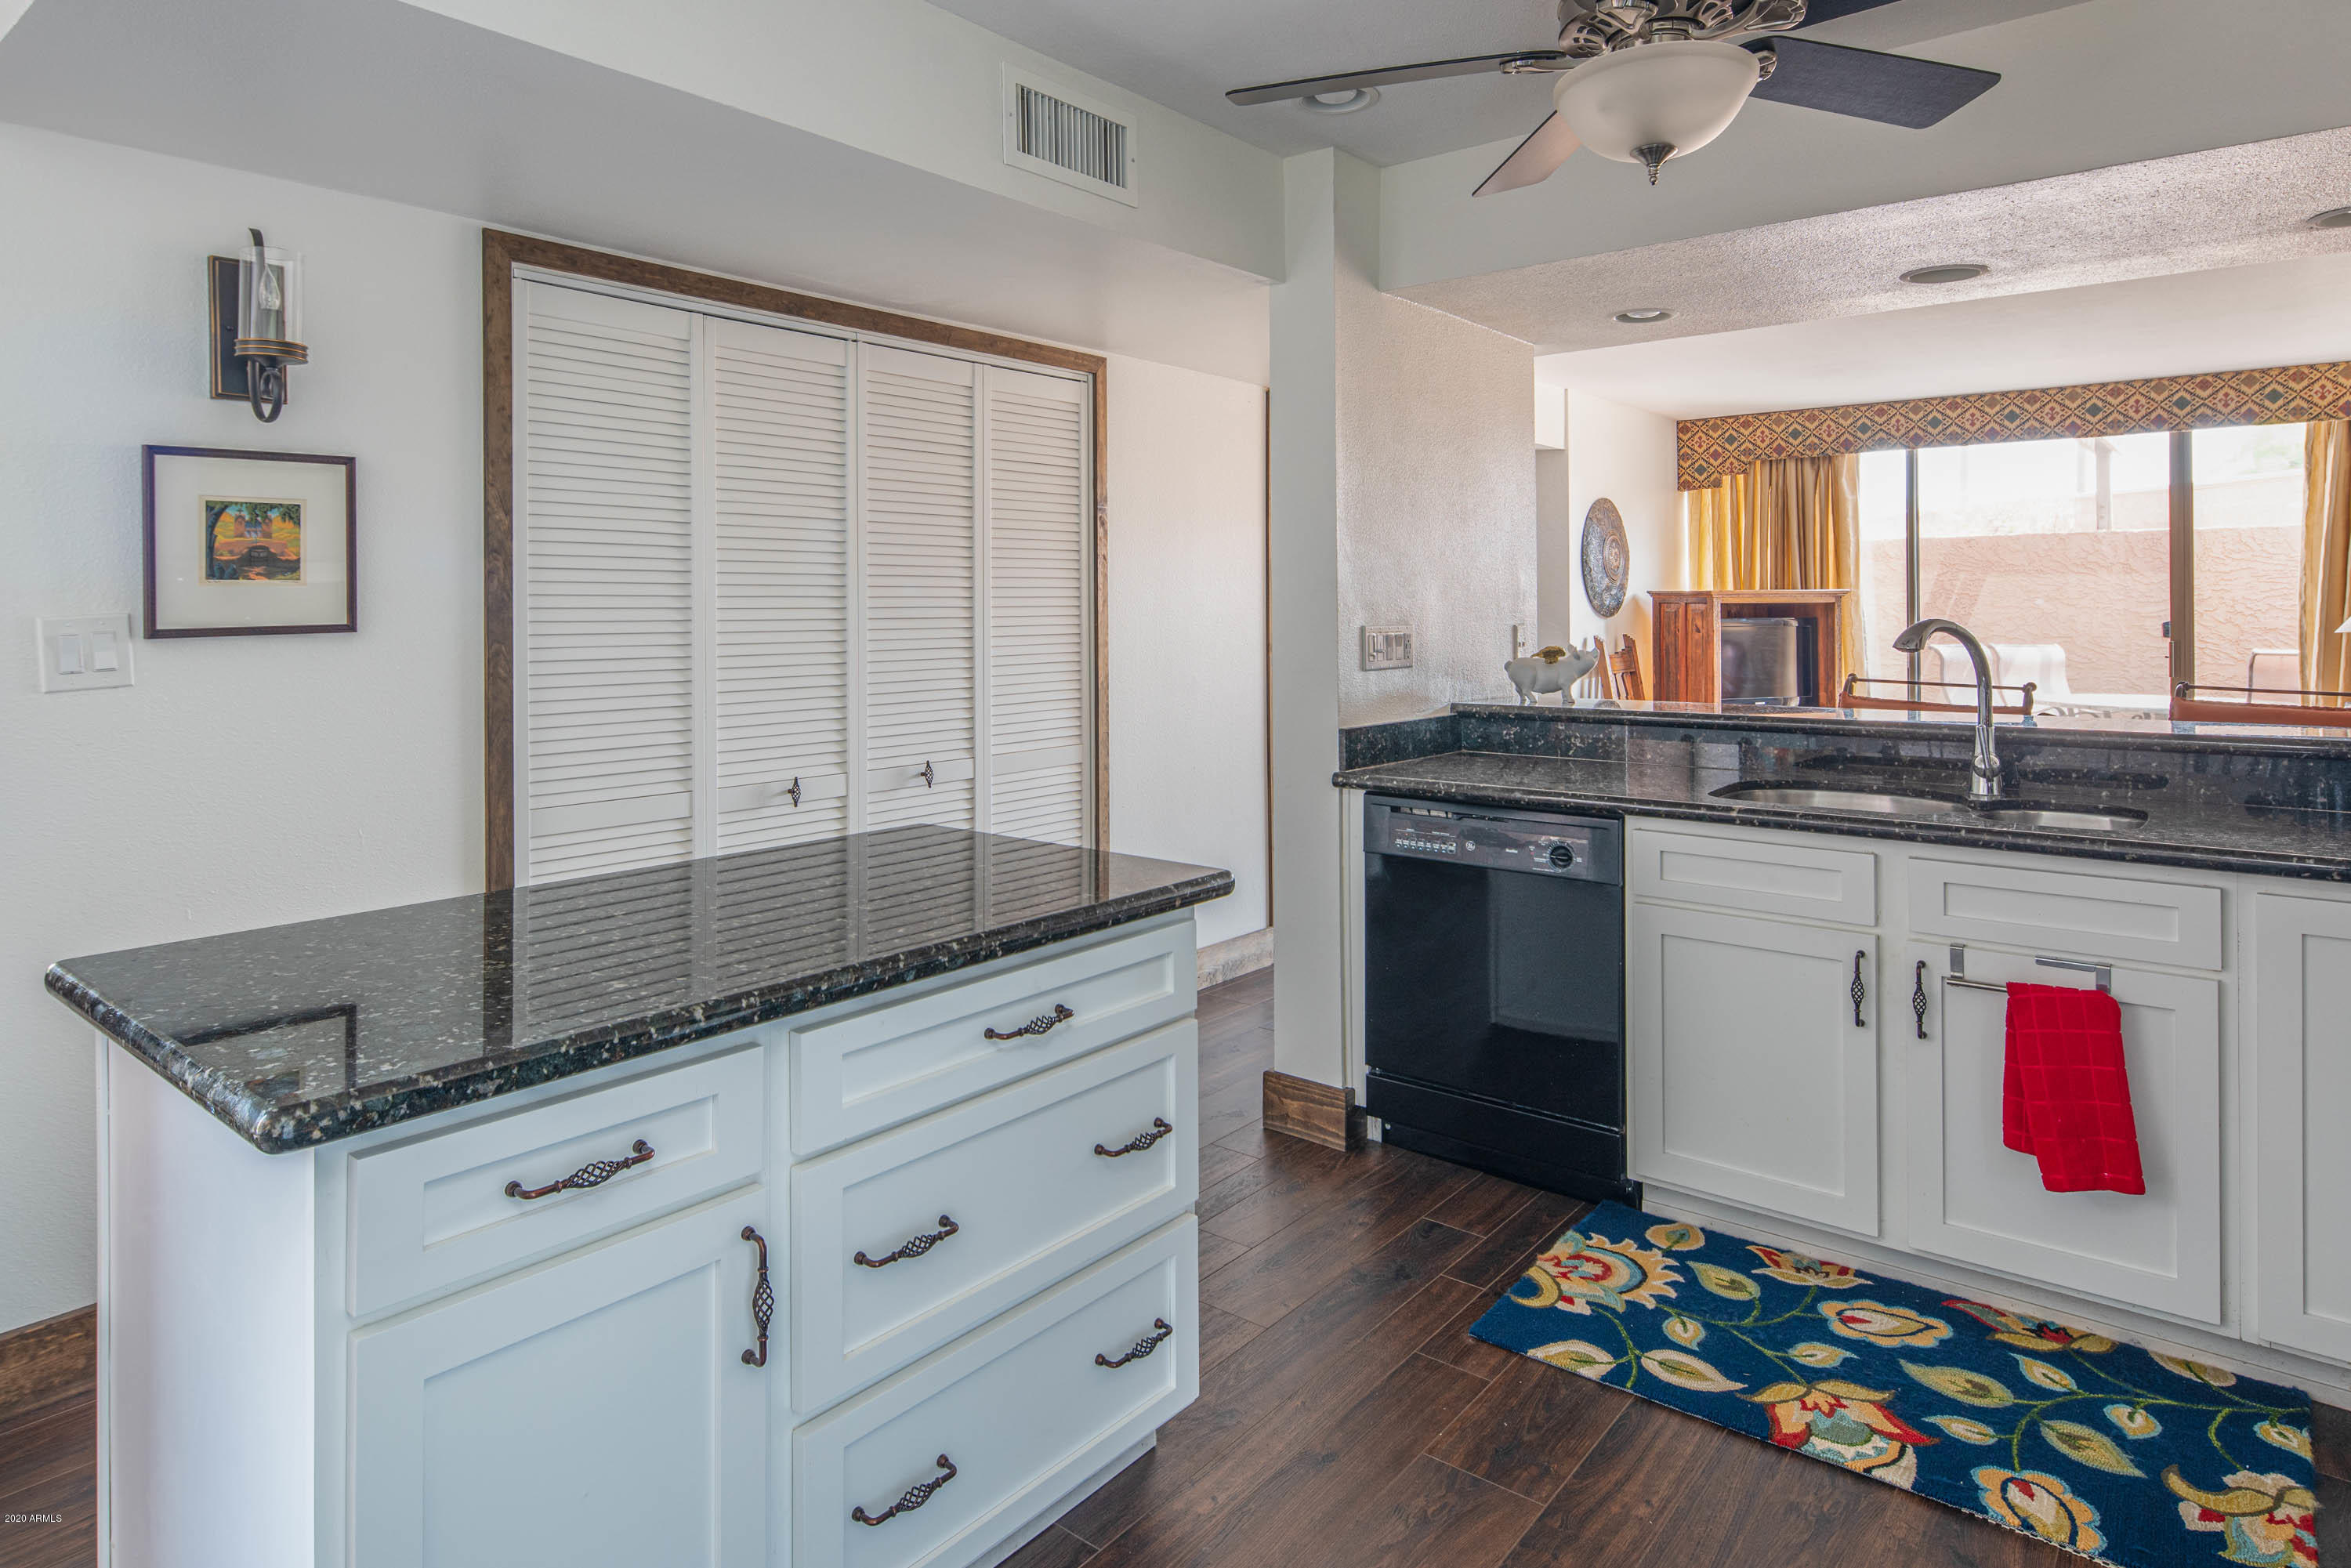 SCOTTSDALE Road, Scottsdale, Arizona 85253, 3 Bedrooms Bedrooms, ,2.5 BathroomsBathrooms,Residential,For Sale,SCOTTSDALE,6123261